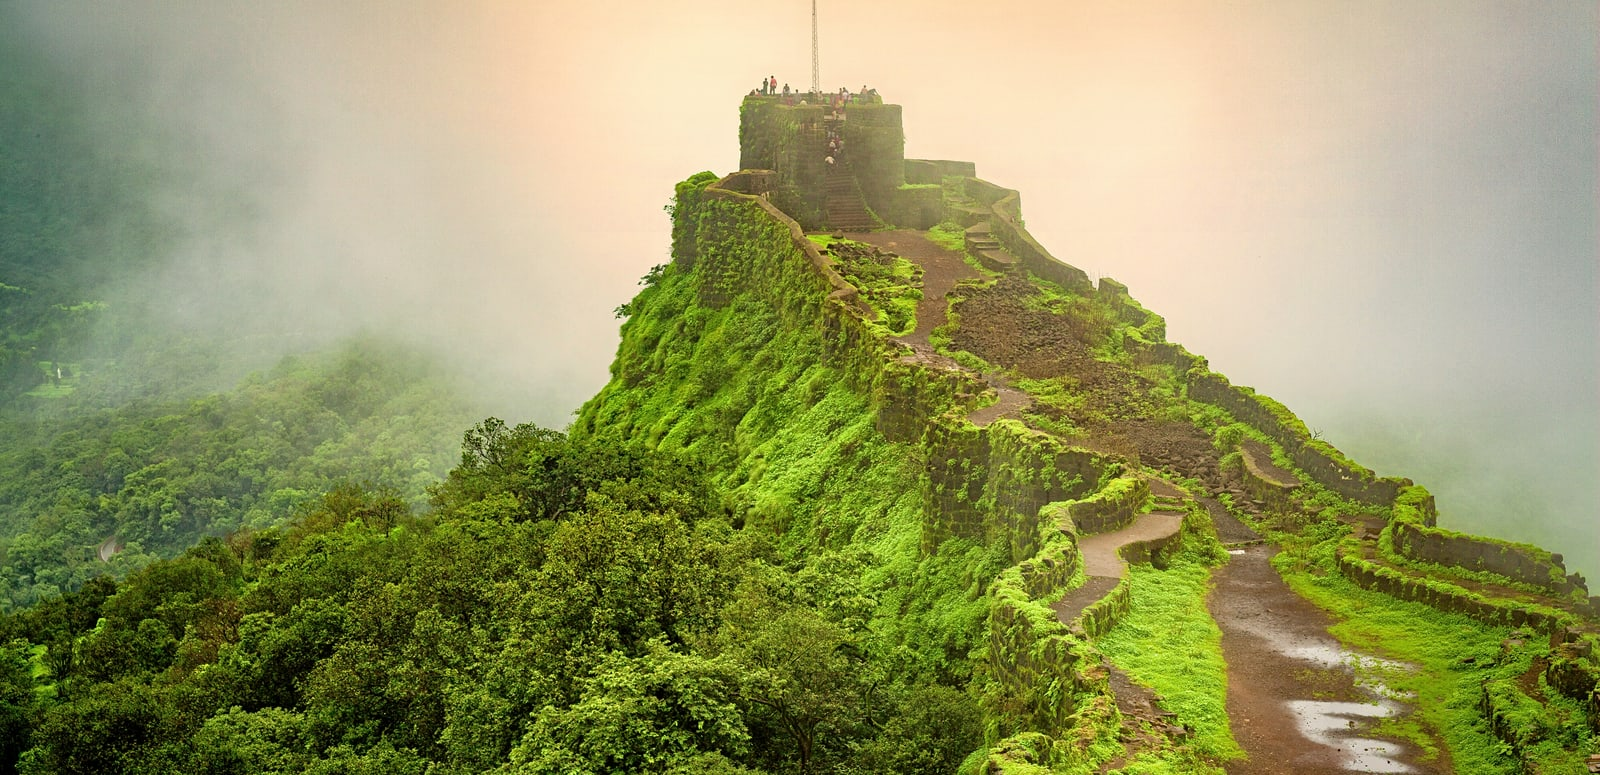 35 Best Places to Visit in Mahabaleshwar - 2019 (Photos